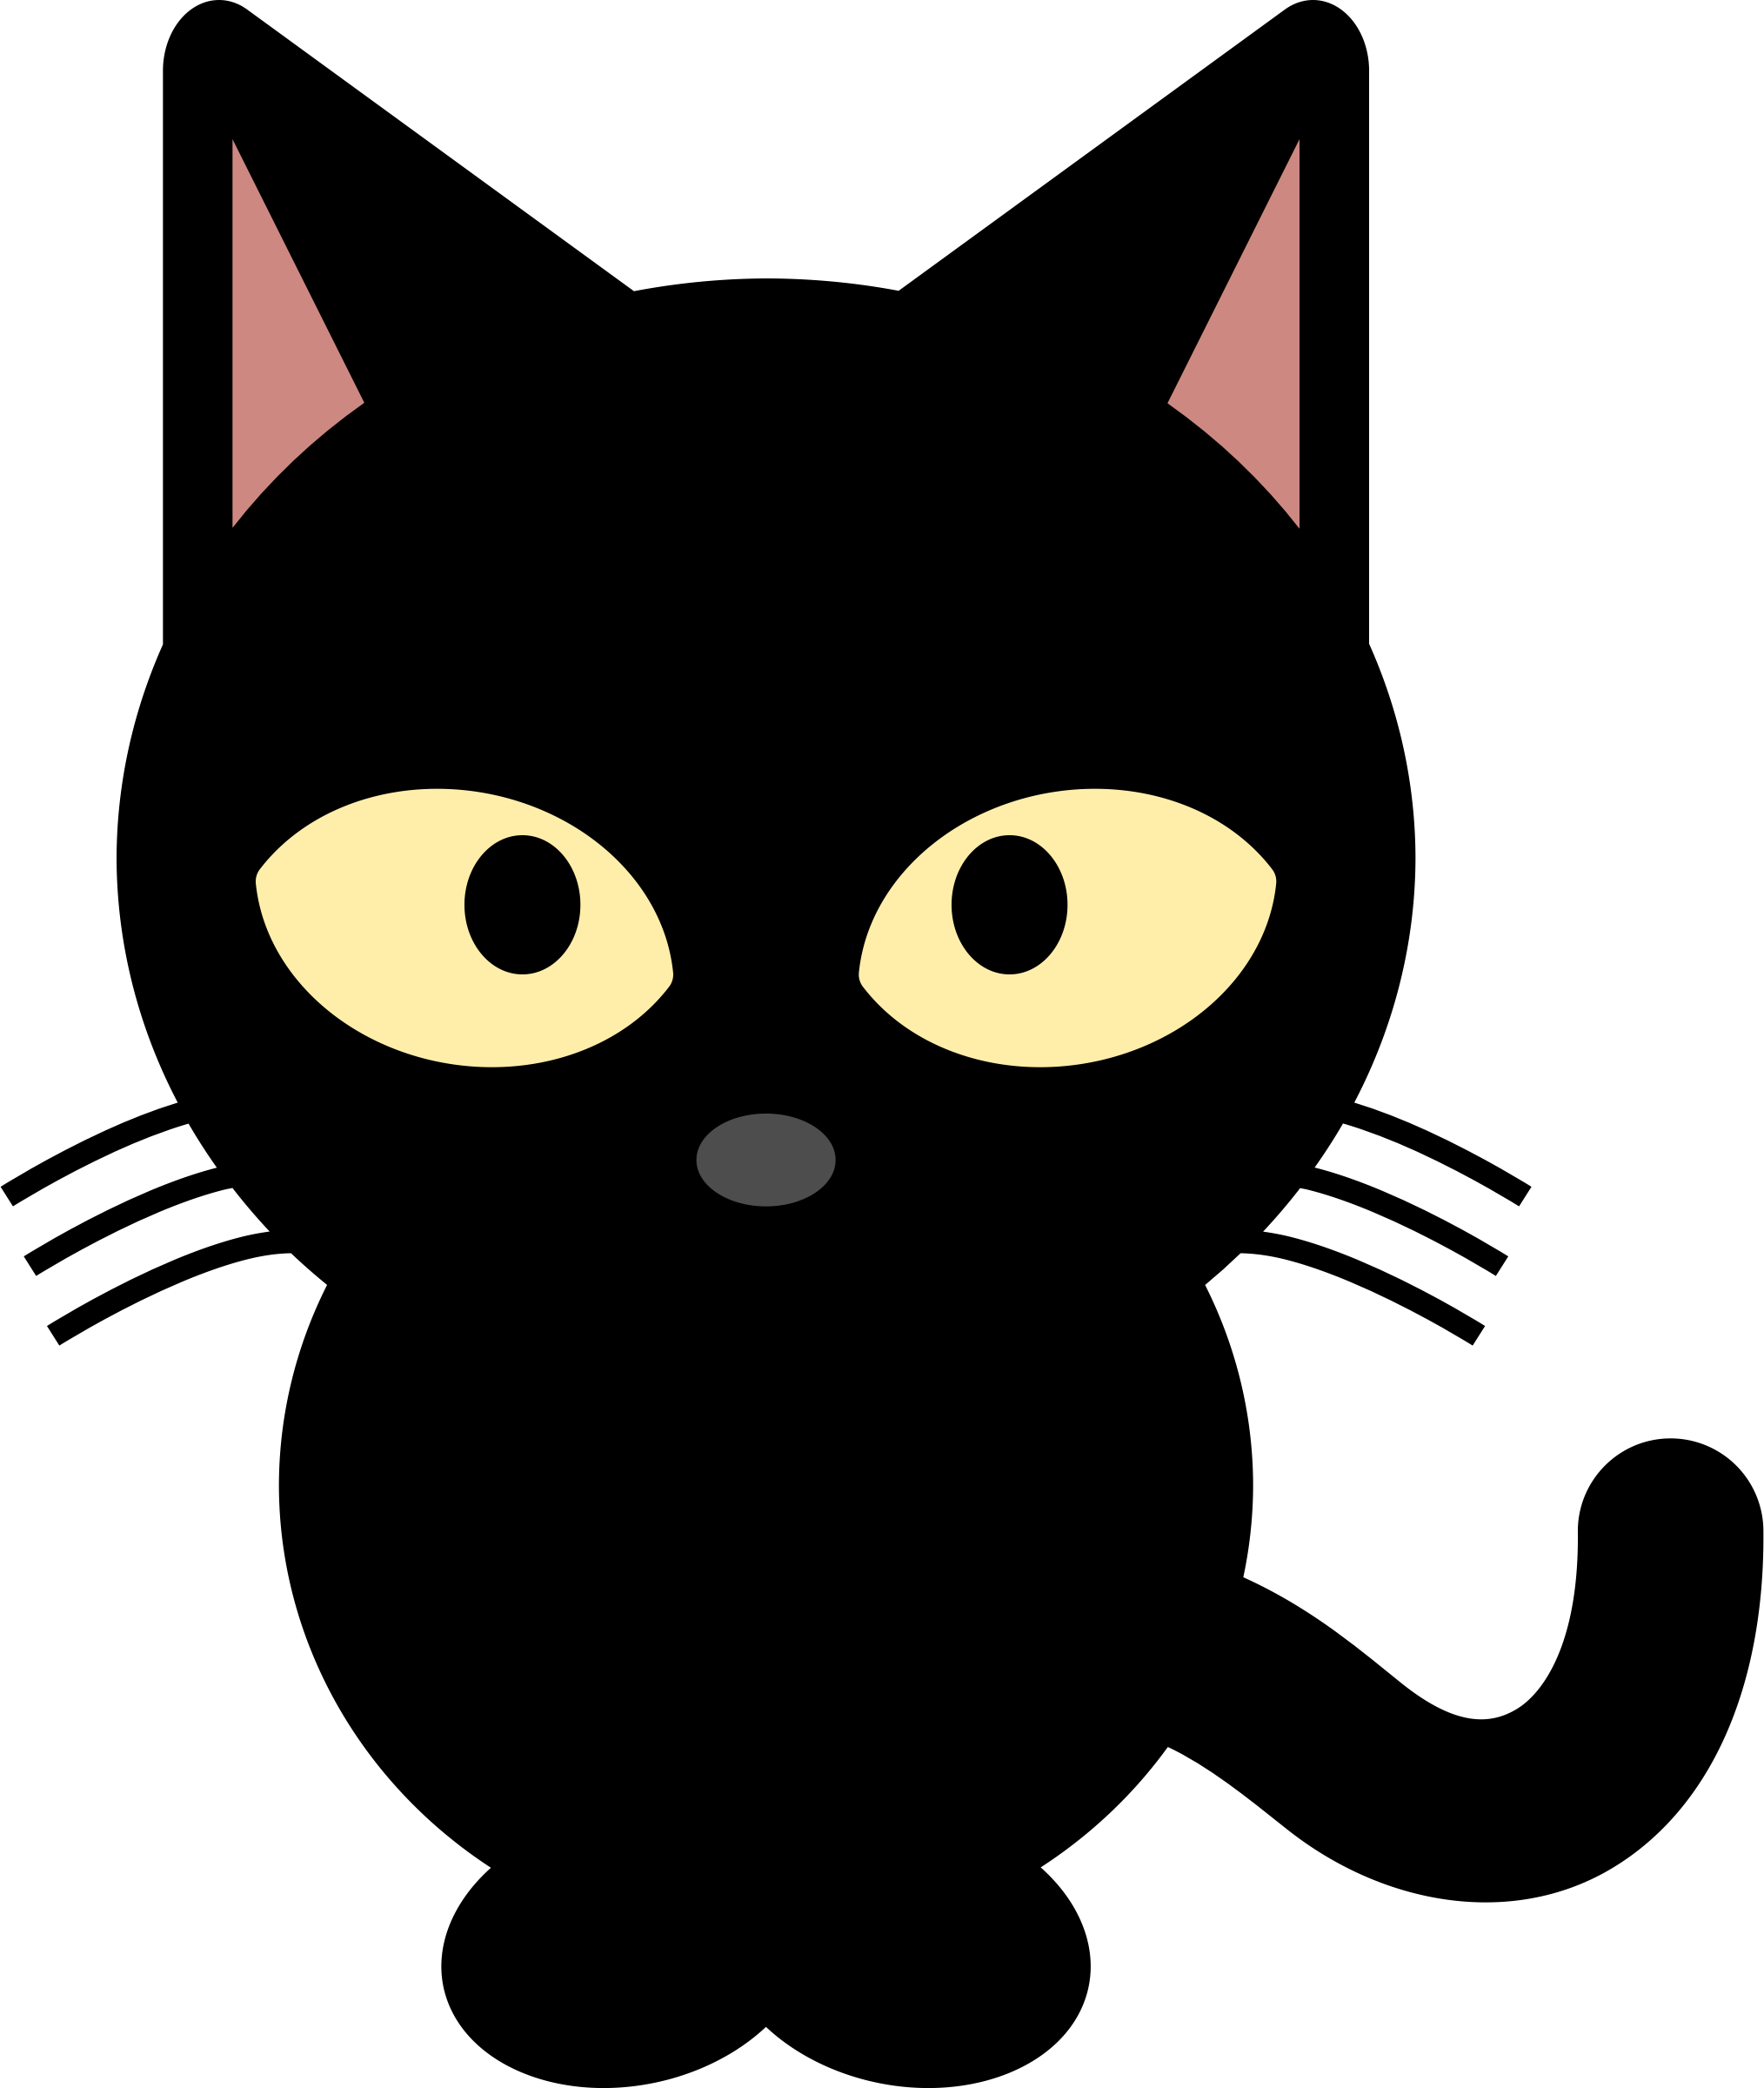 Download Black Cat Latest Version 2018 image #30352